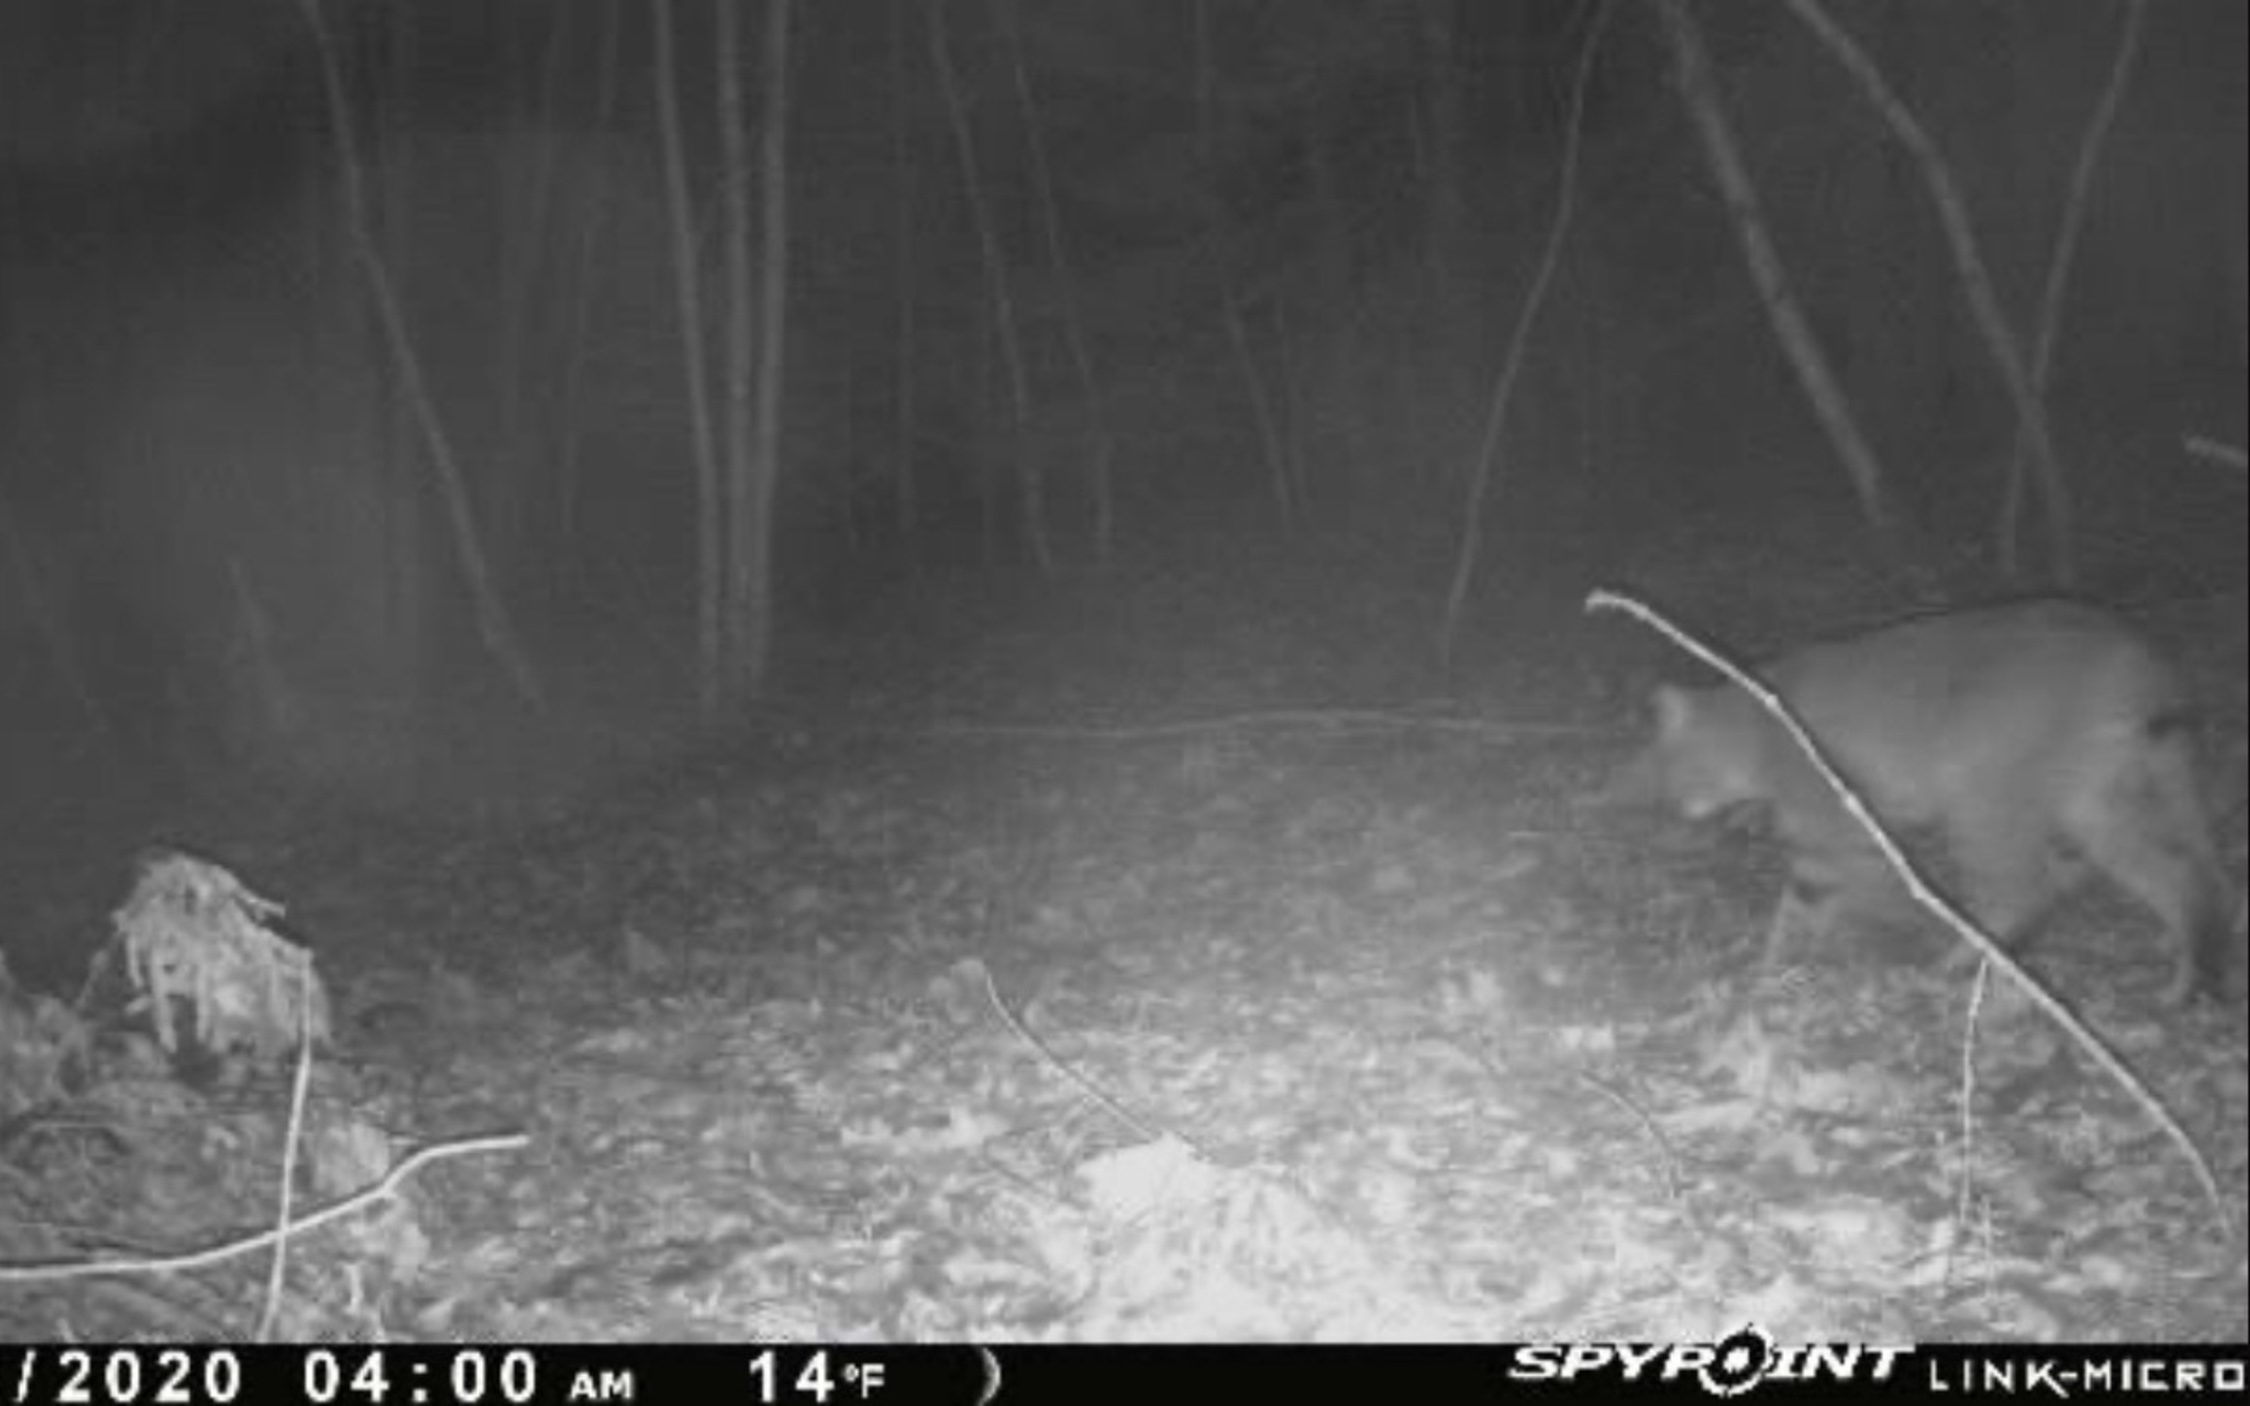 Mountain Lions in Maine?